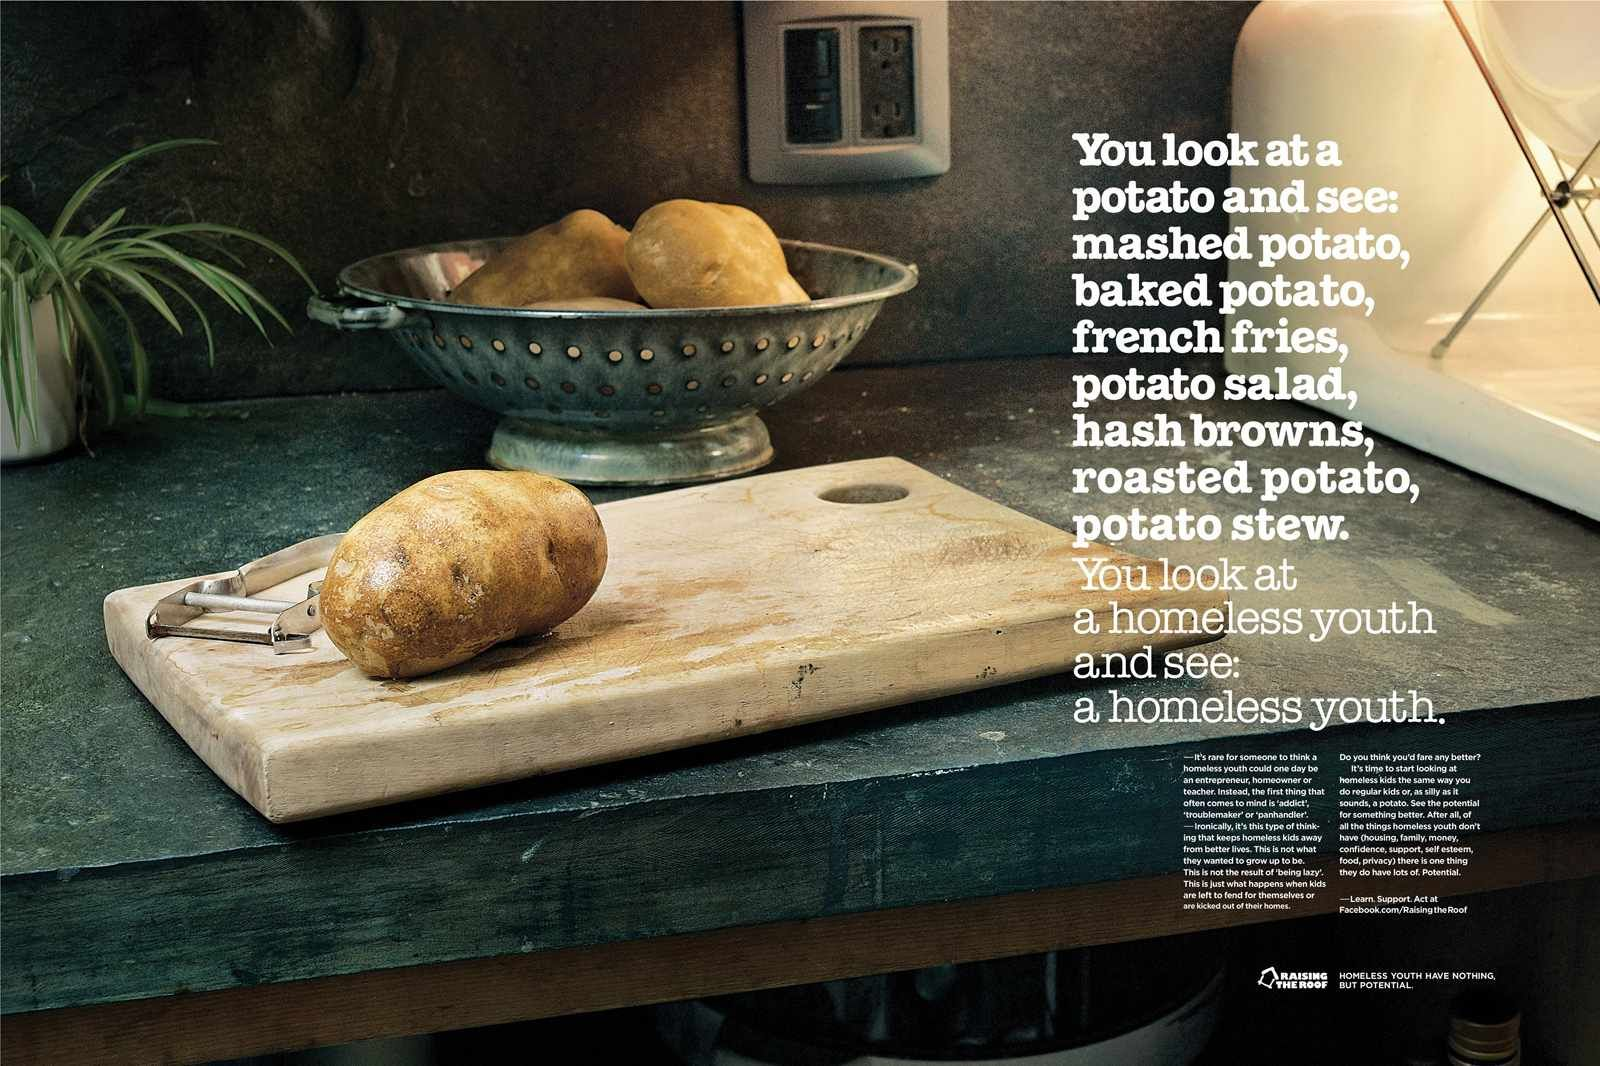 Raising The Roof Potato Ads Of The World Potatoes Stewed Potatoes Food Promotion